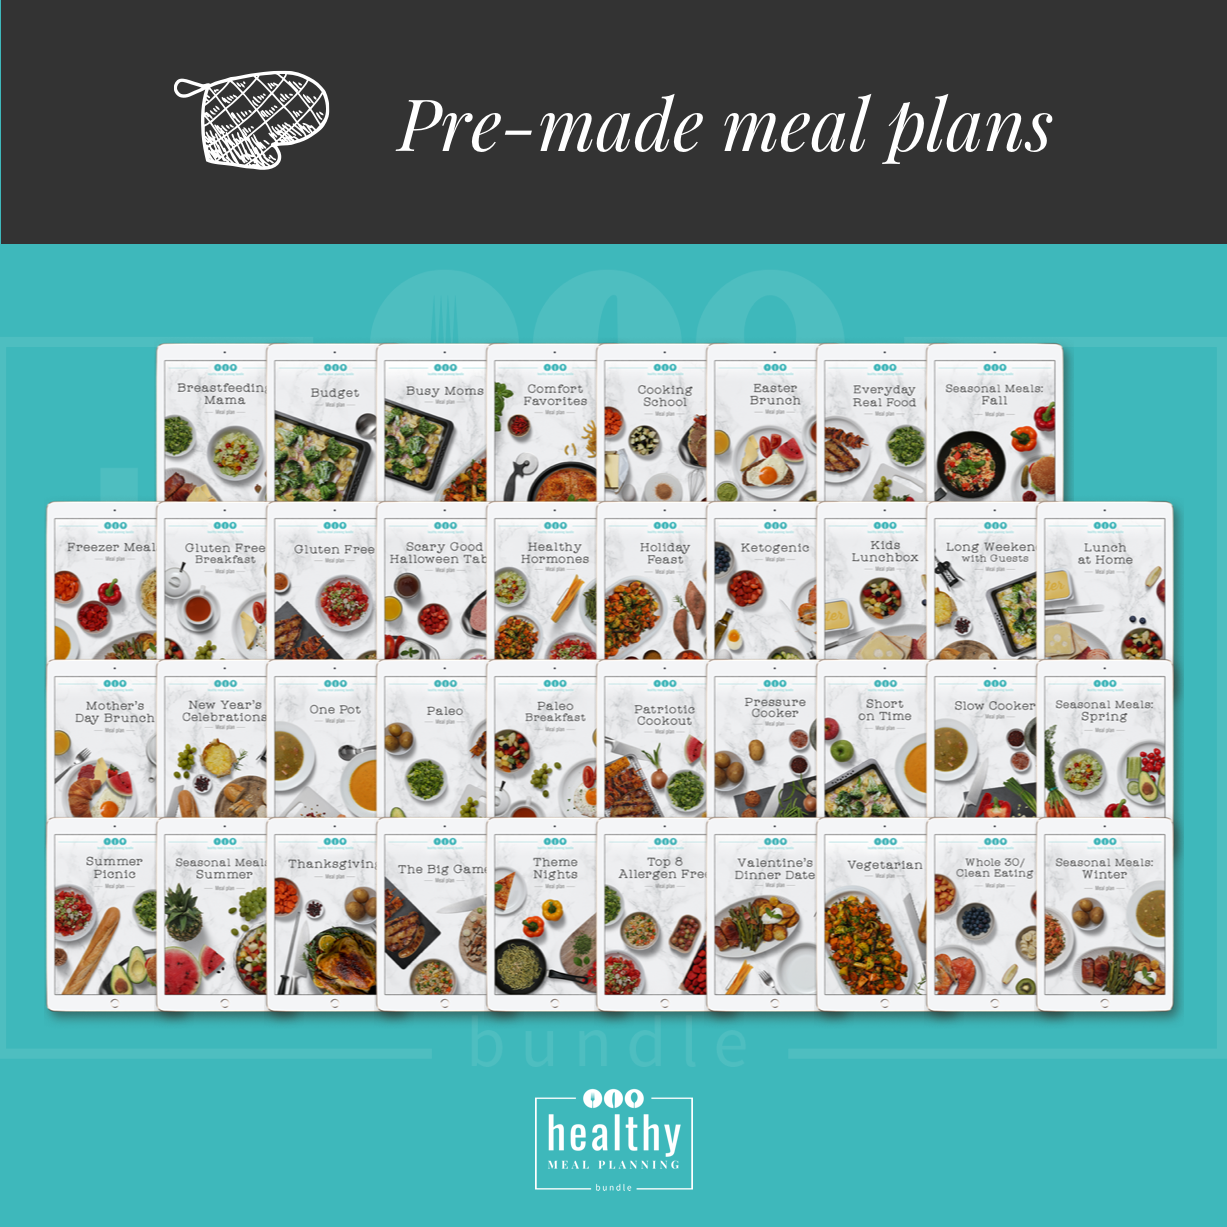 Pre-made meal plans